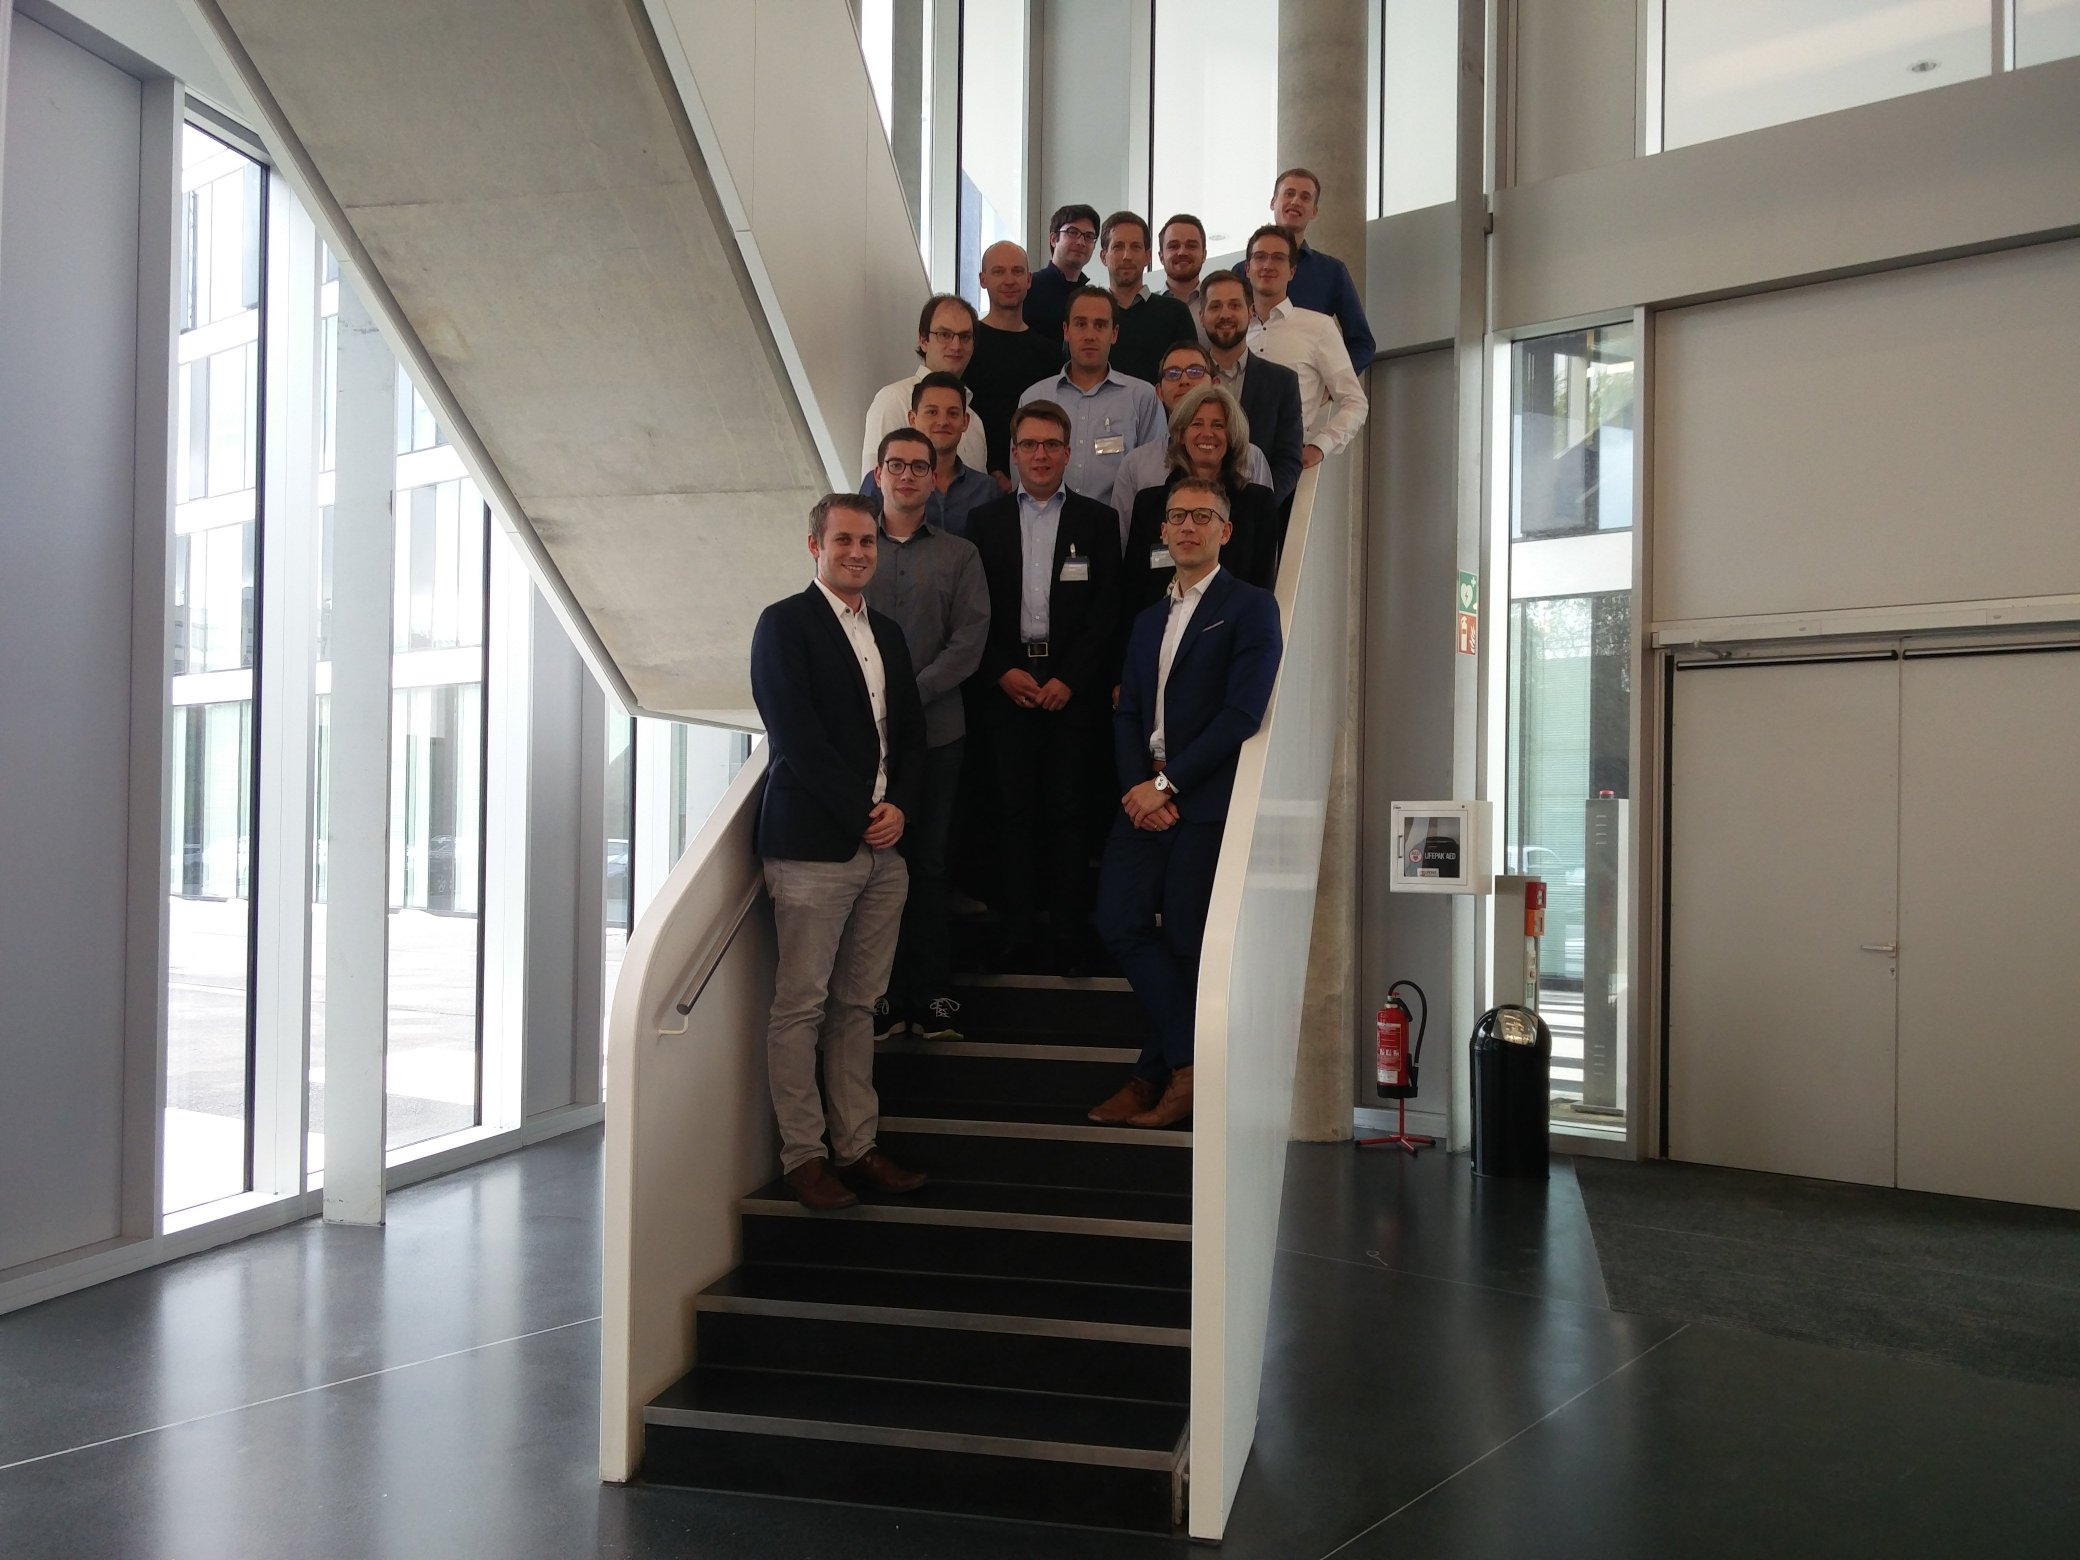 Project partners at RWTH Aachen University